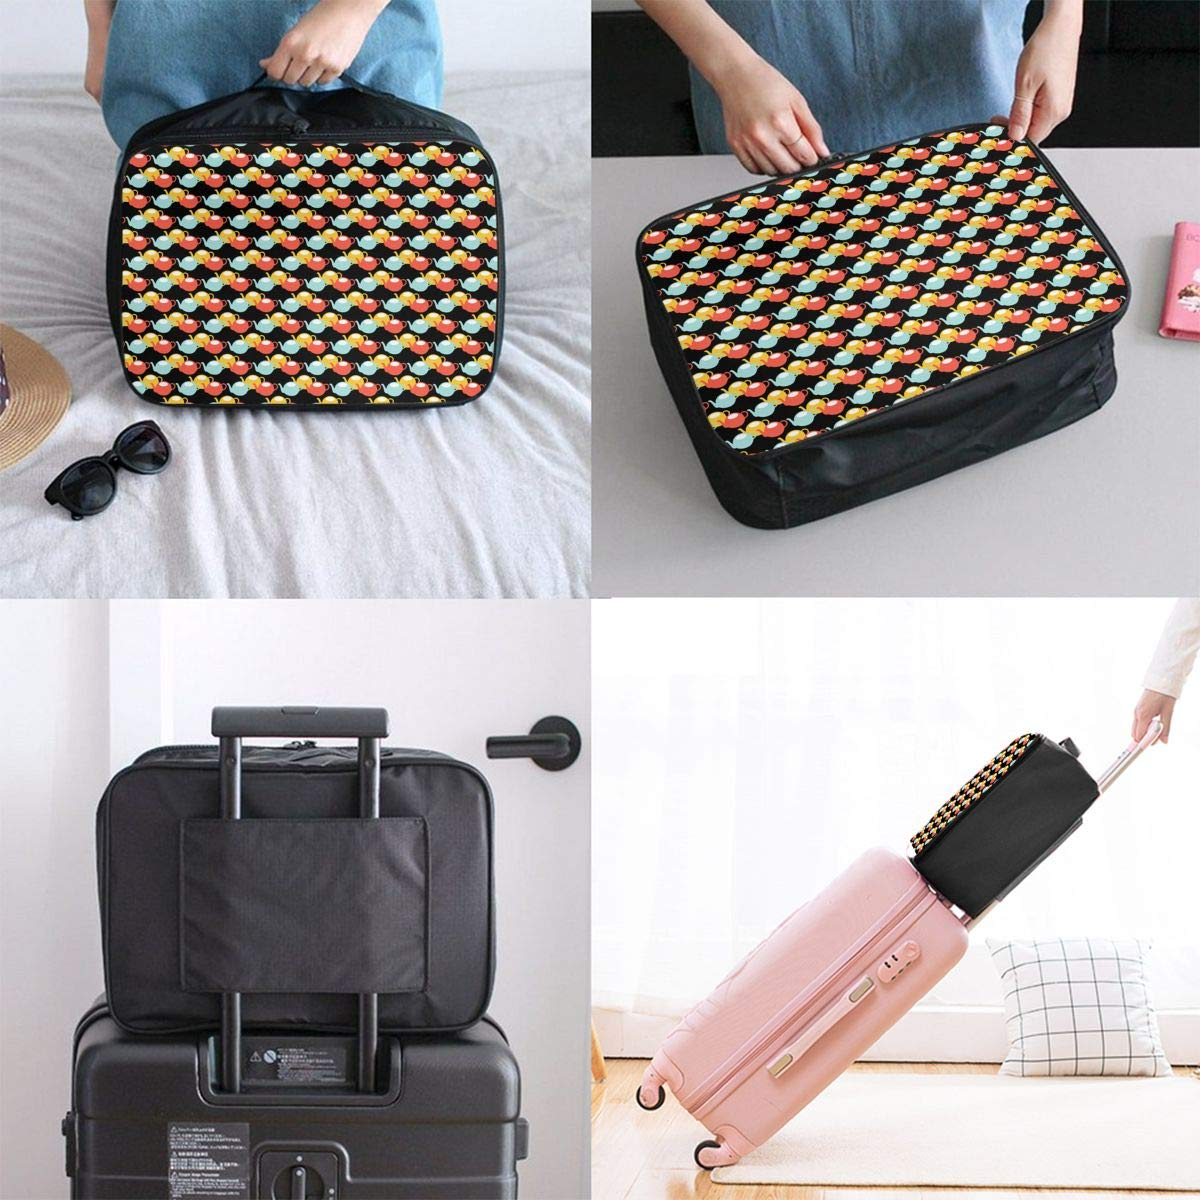 YueLJB Chinese Tea Teapot Lightweight Large Capacity Portable Luggage Bag Travel Duffel Bag Storage Carry Luggage Duffle Tote Bag